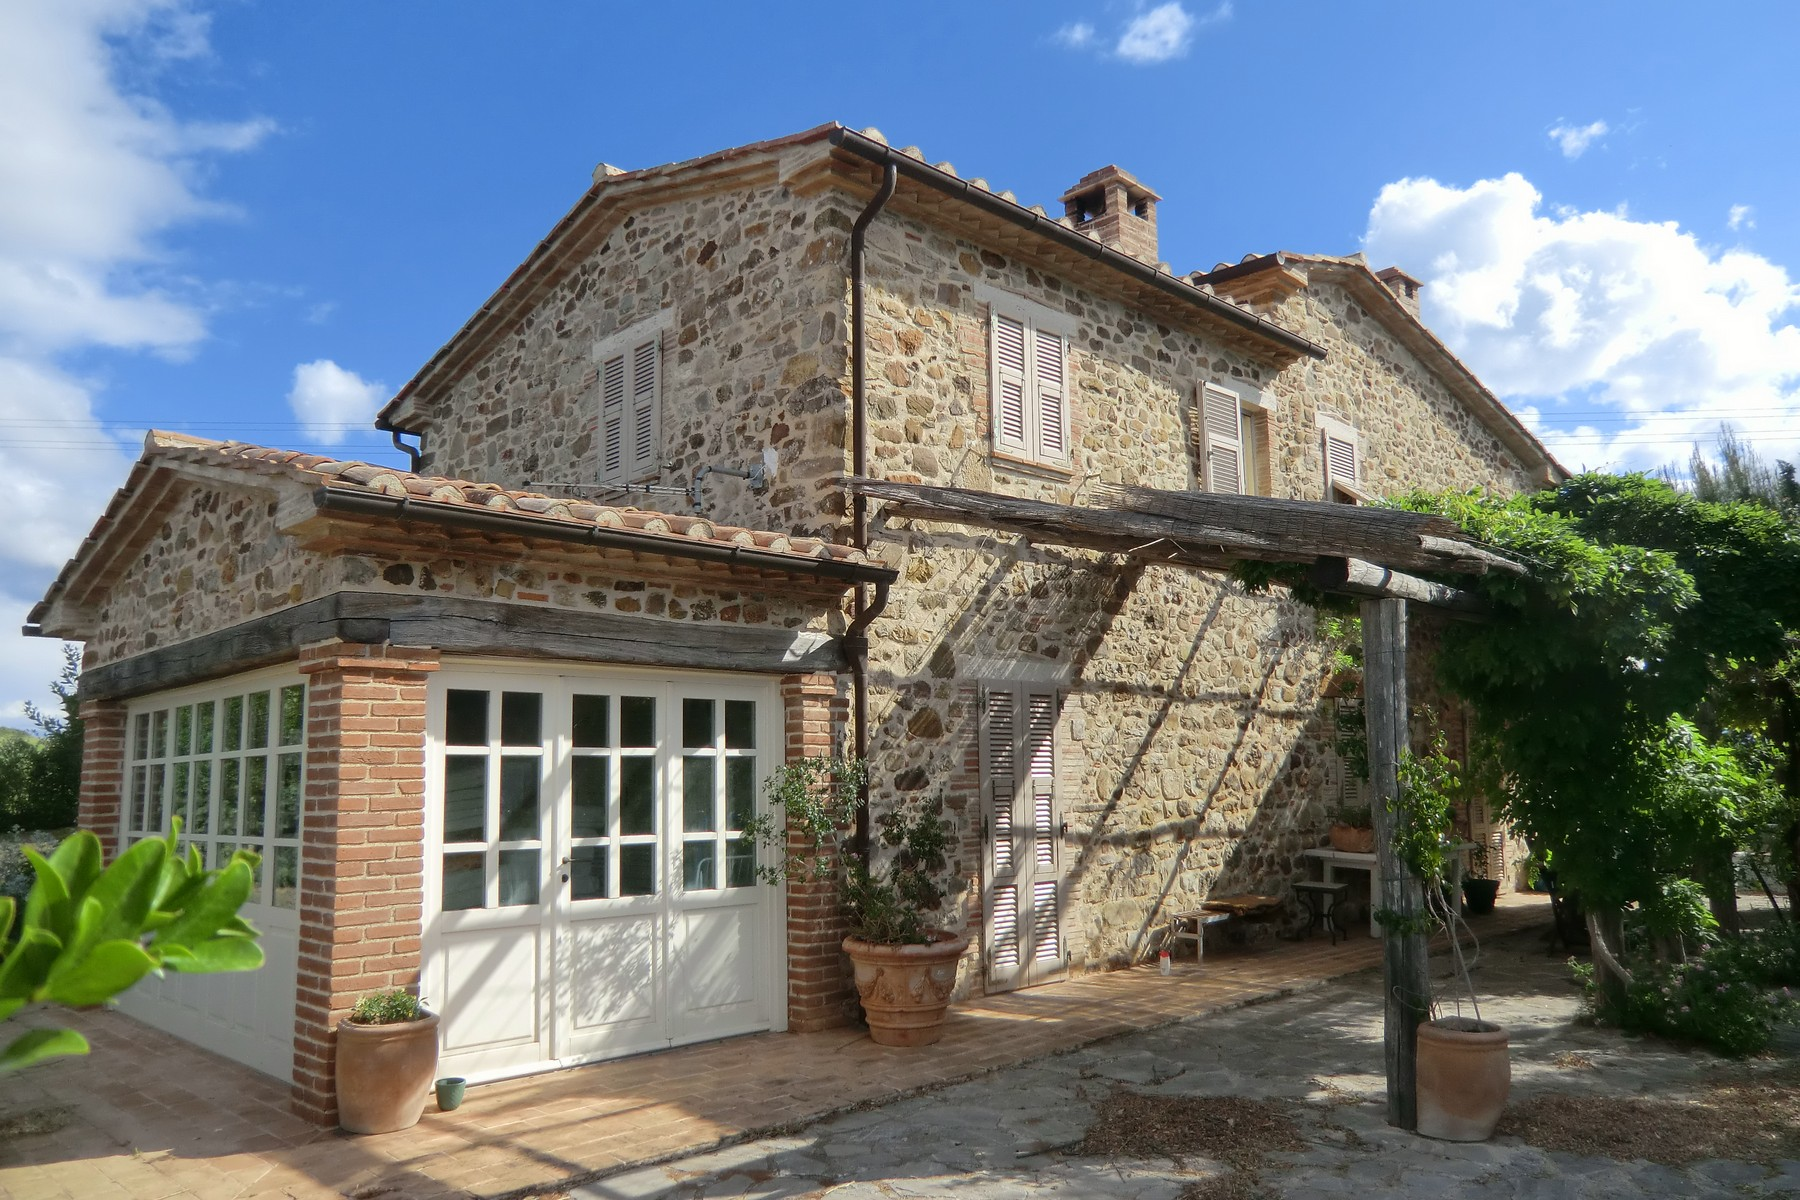 Single Family Home for Sale at Typical Tuscan farmhouse in the hearth of the Maremma Saturnia, 58014 Italy